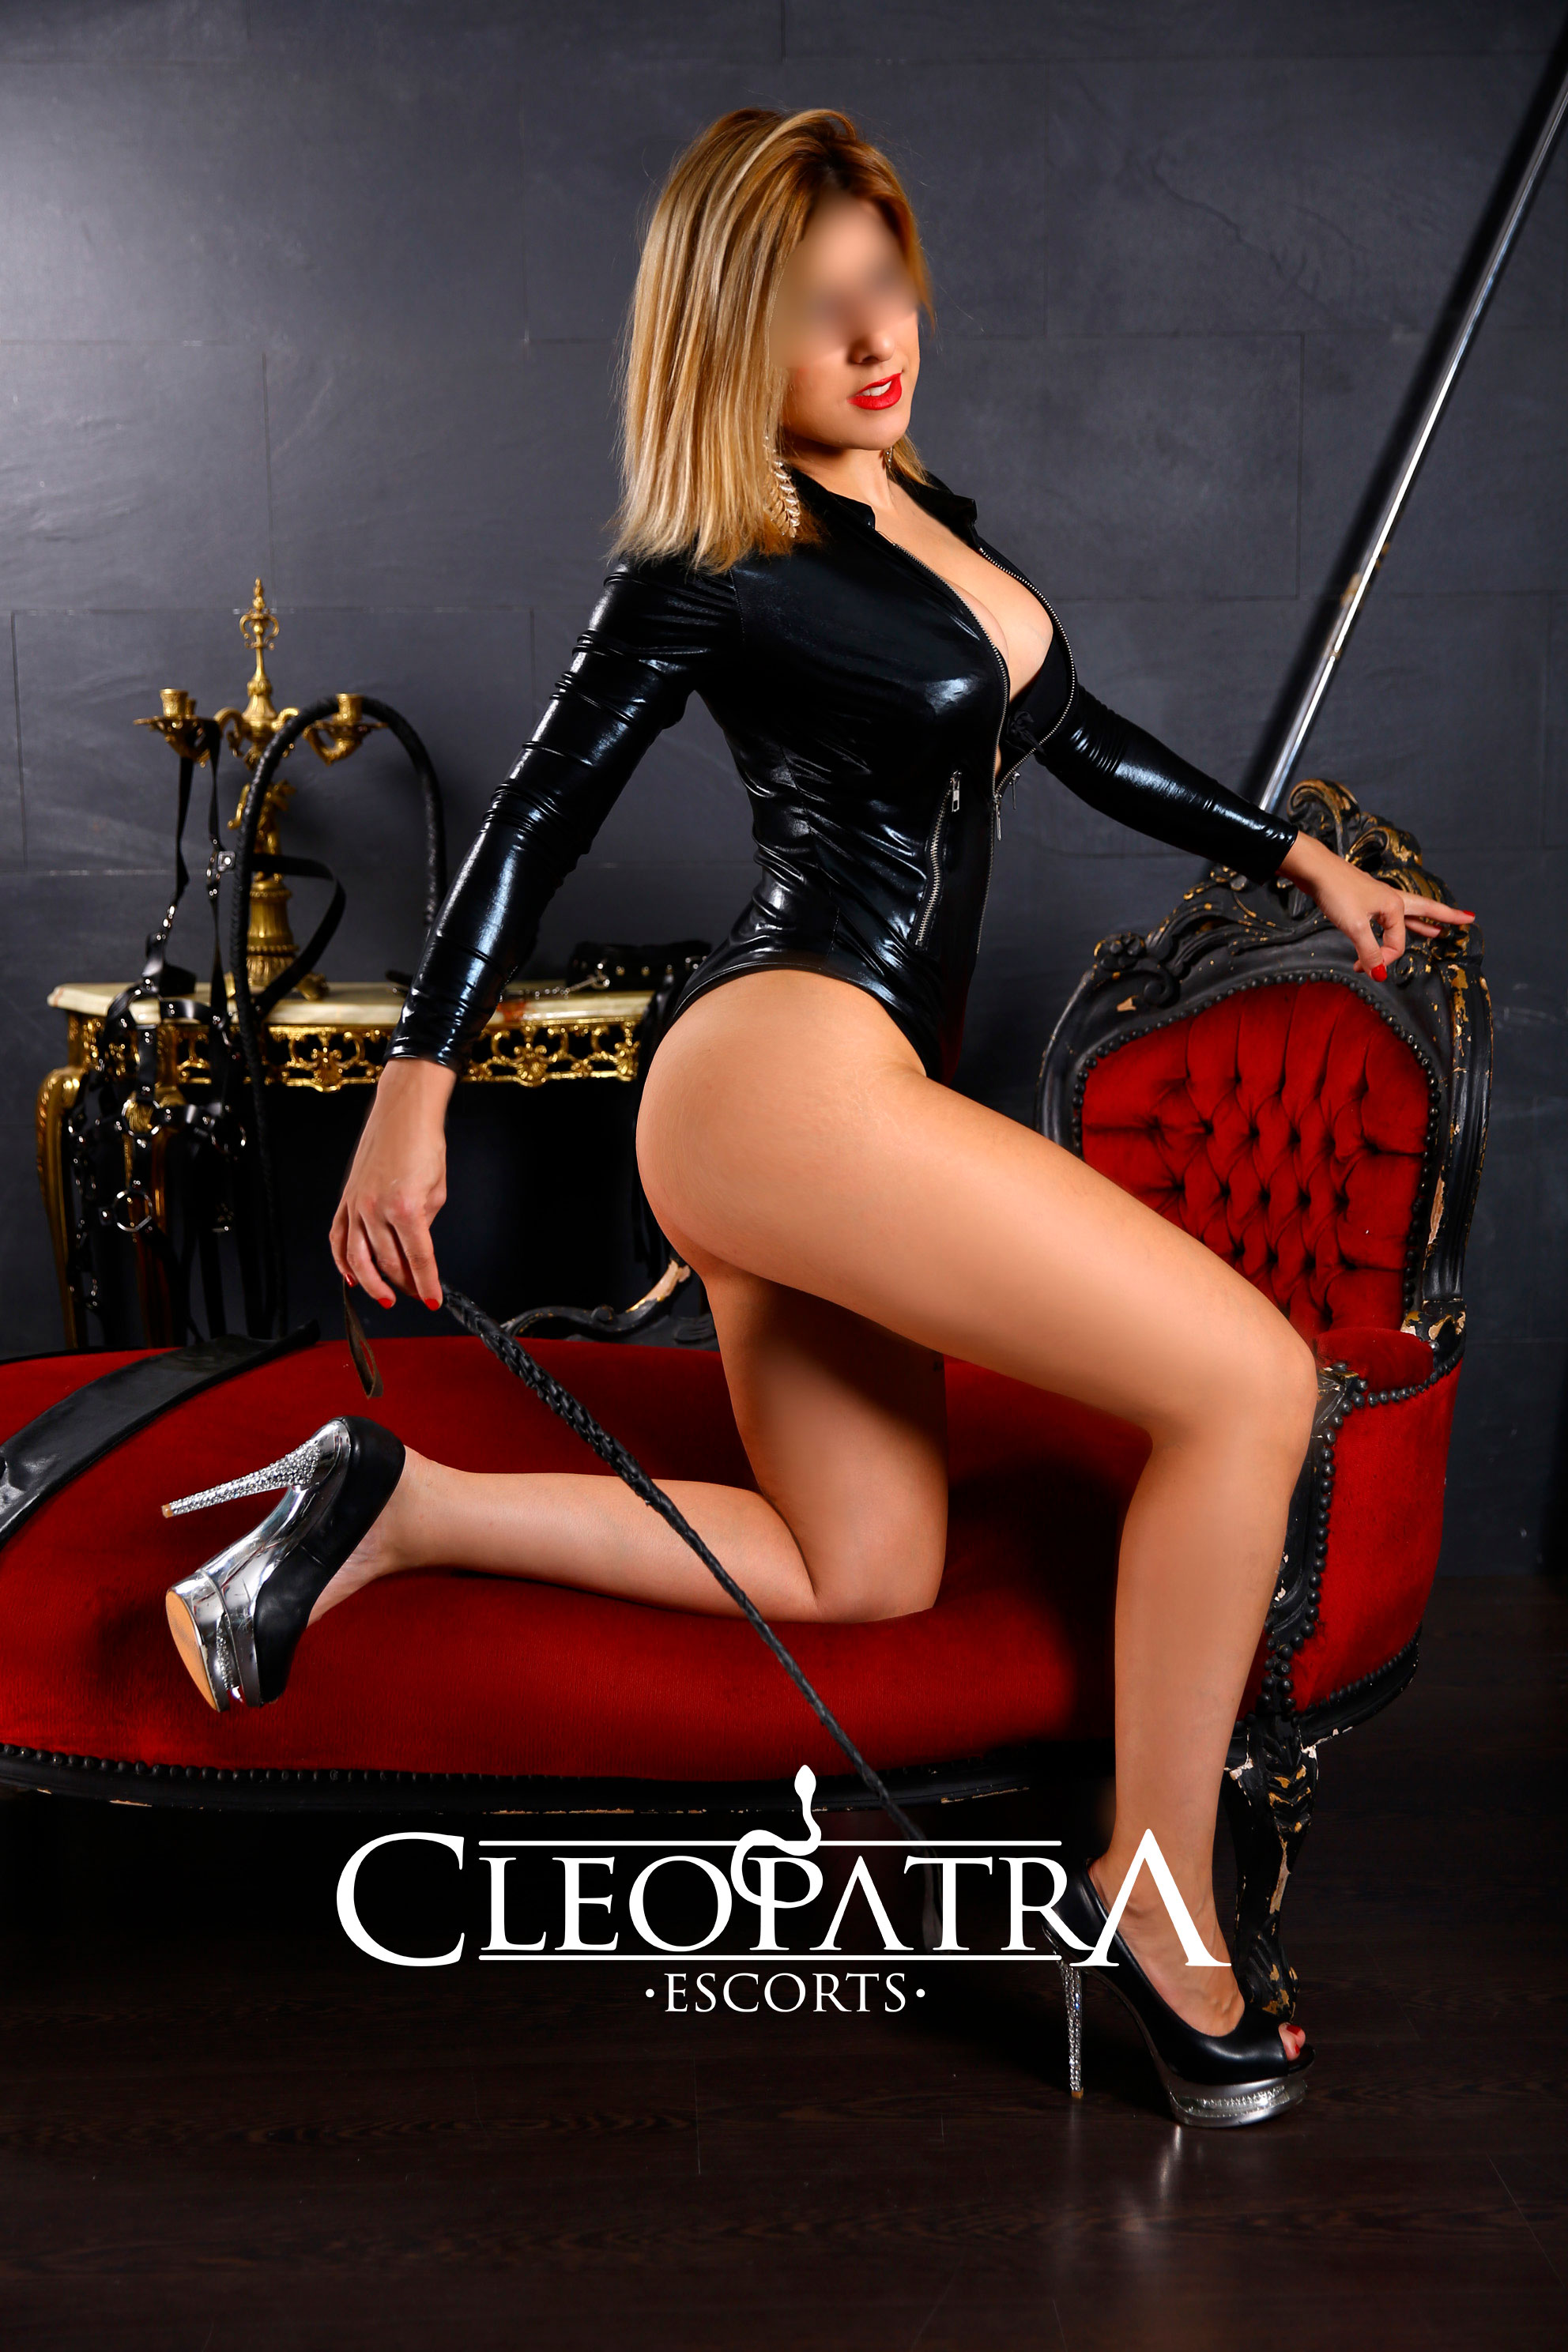 Sofia-escort-privada